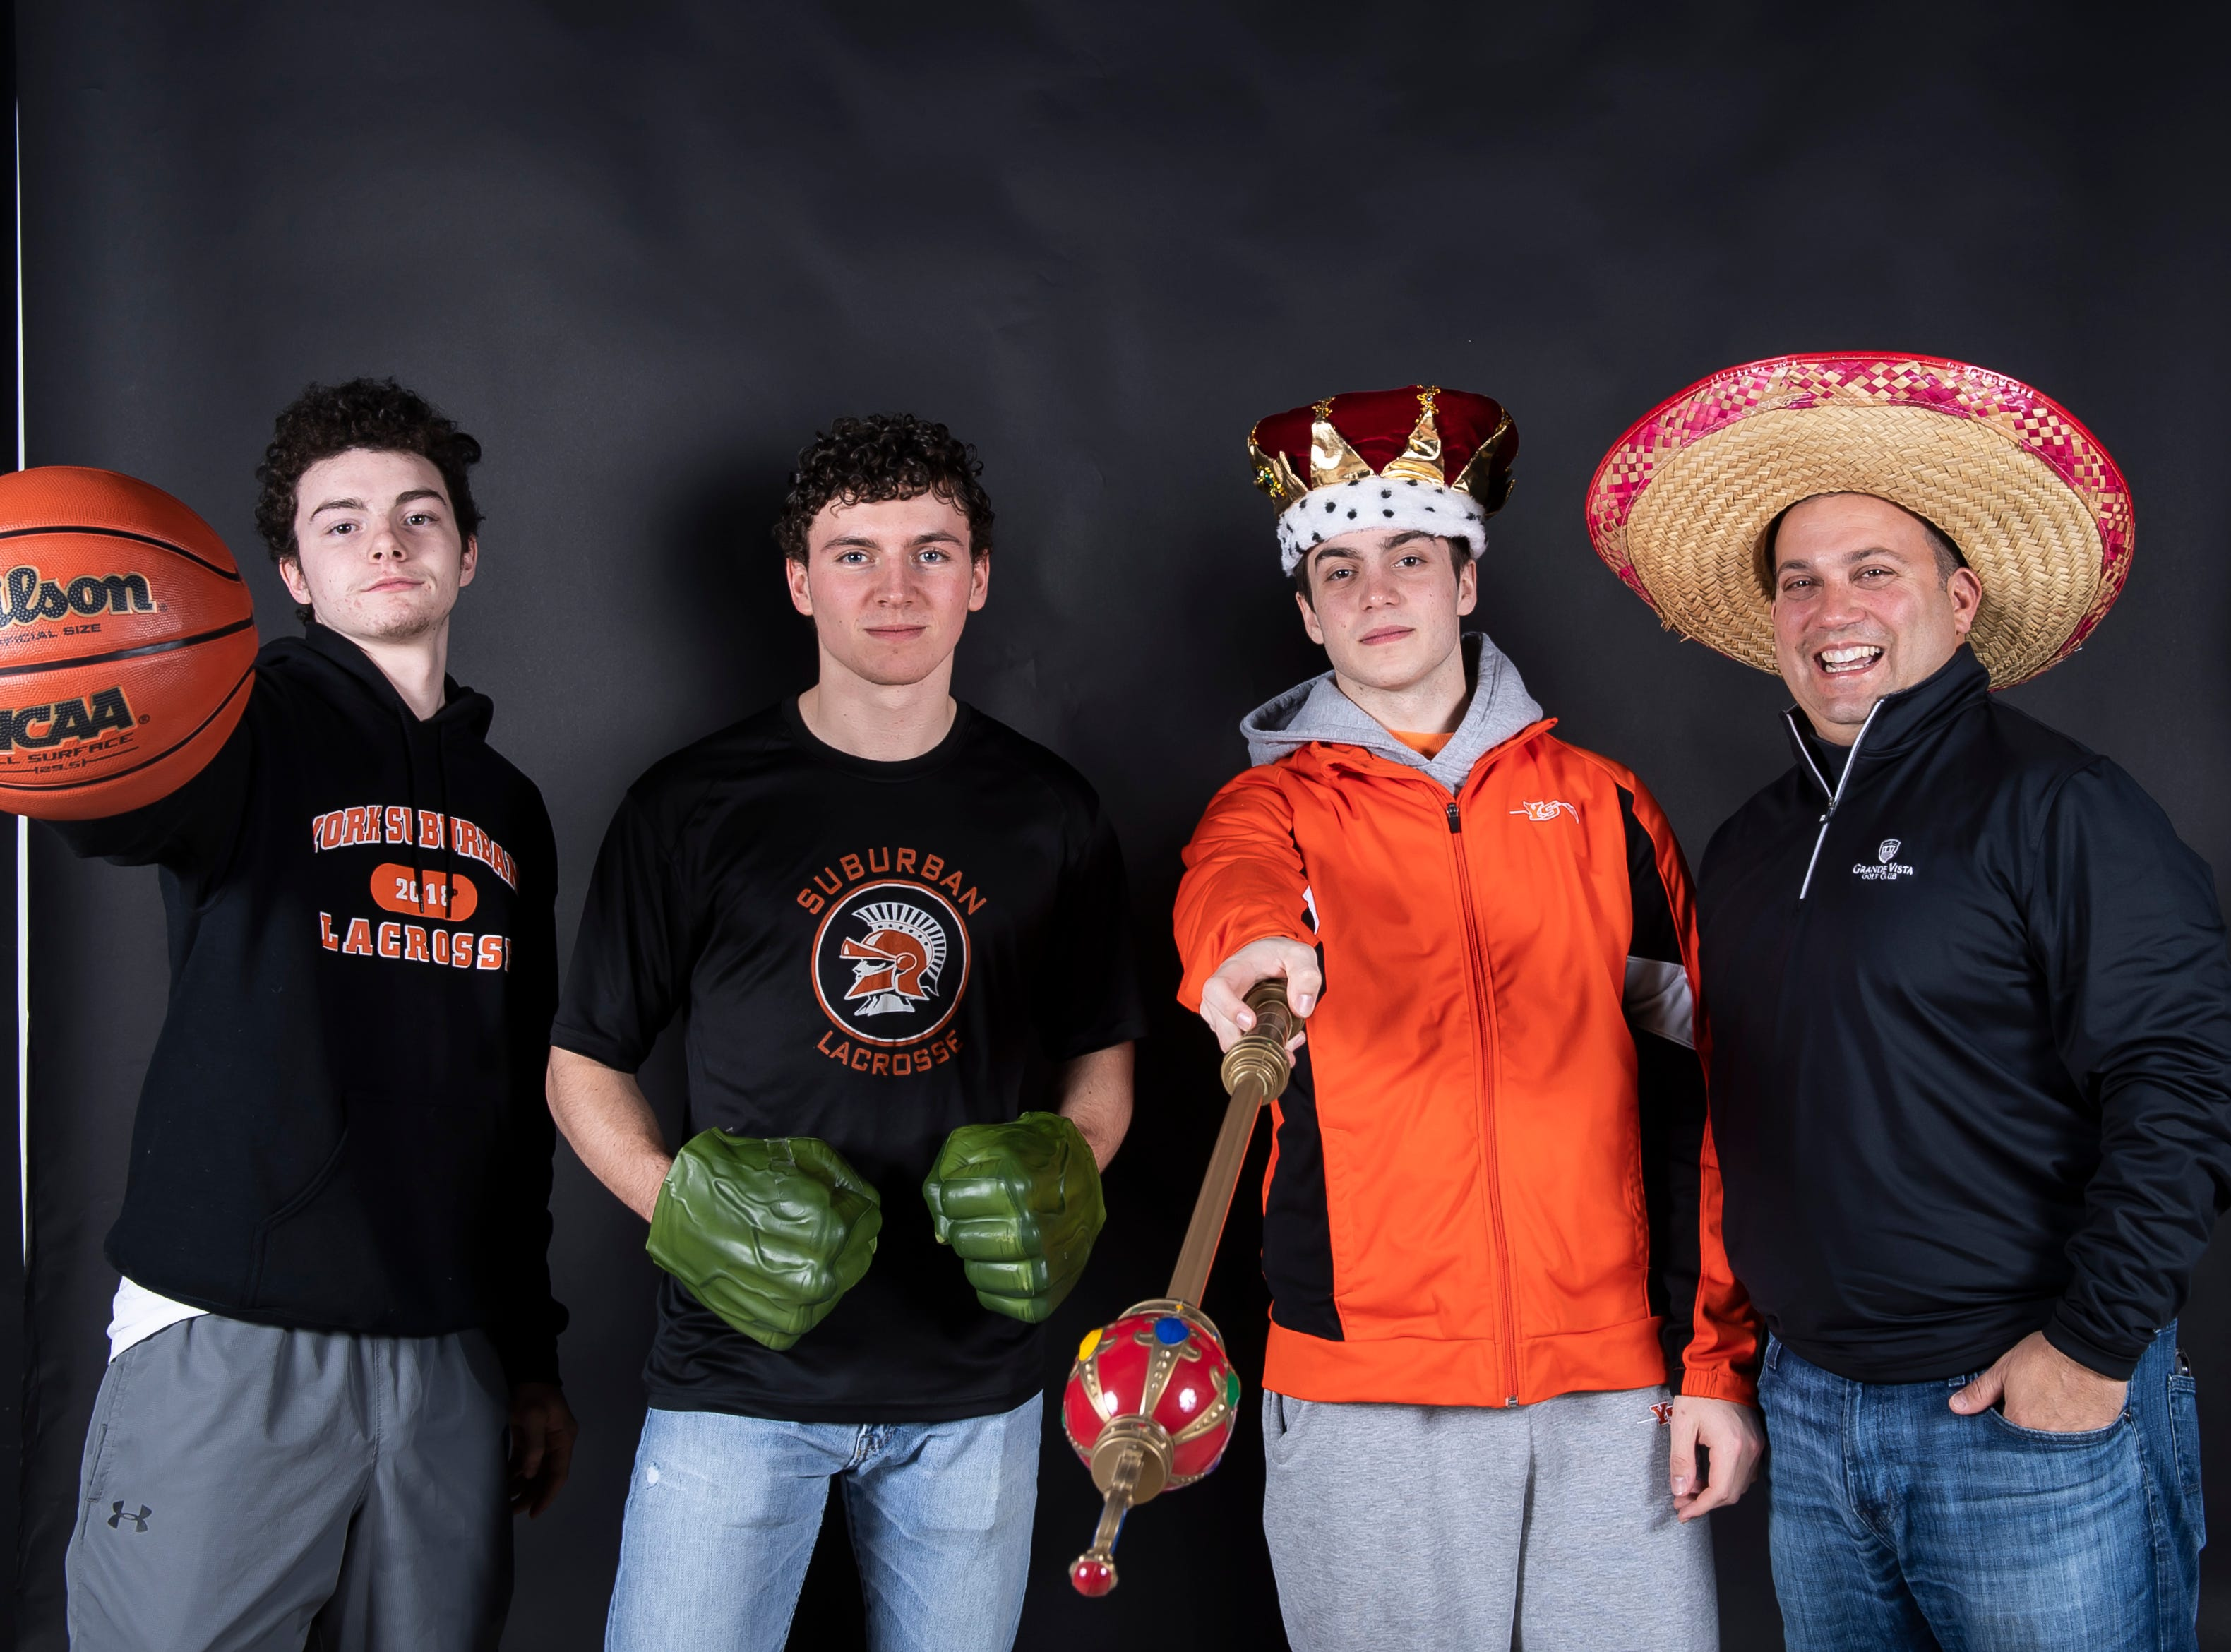 (From left) York Suburban lacrosse's Justin Shocker, Evan Lecates, Dominic Corto and coach Frank Corto strike a pose in the GameTimePA photo booth during spring sports media day in York Sunday, March 10, 2019.